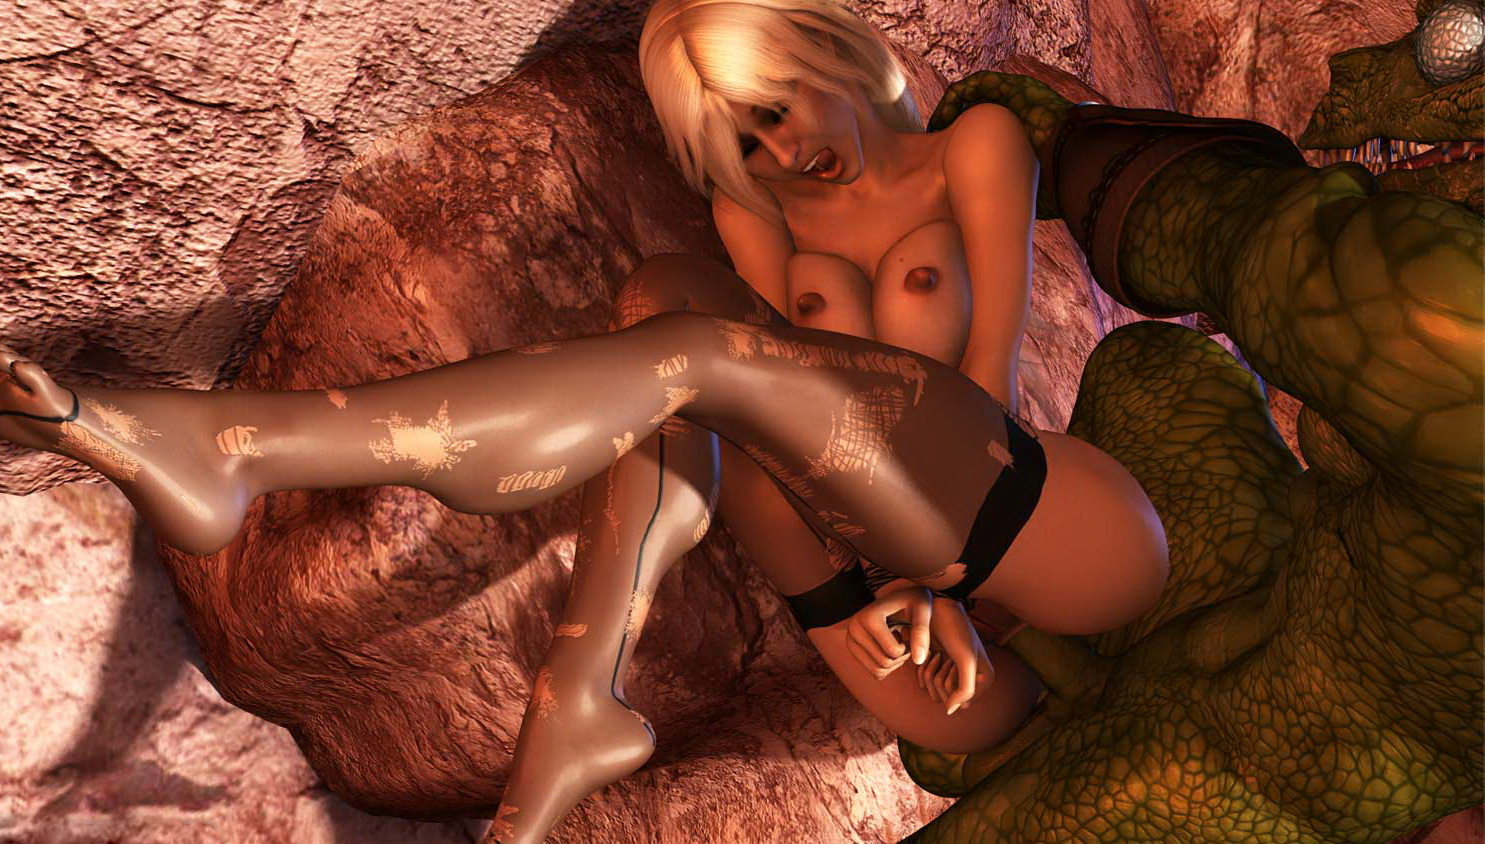 Hentia 3d porn erotic photo